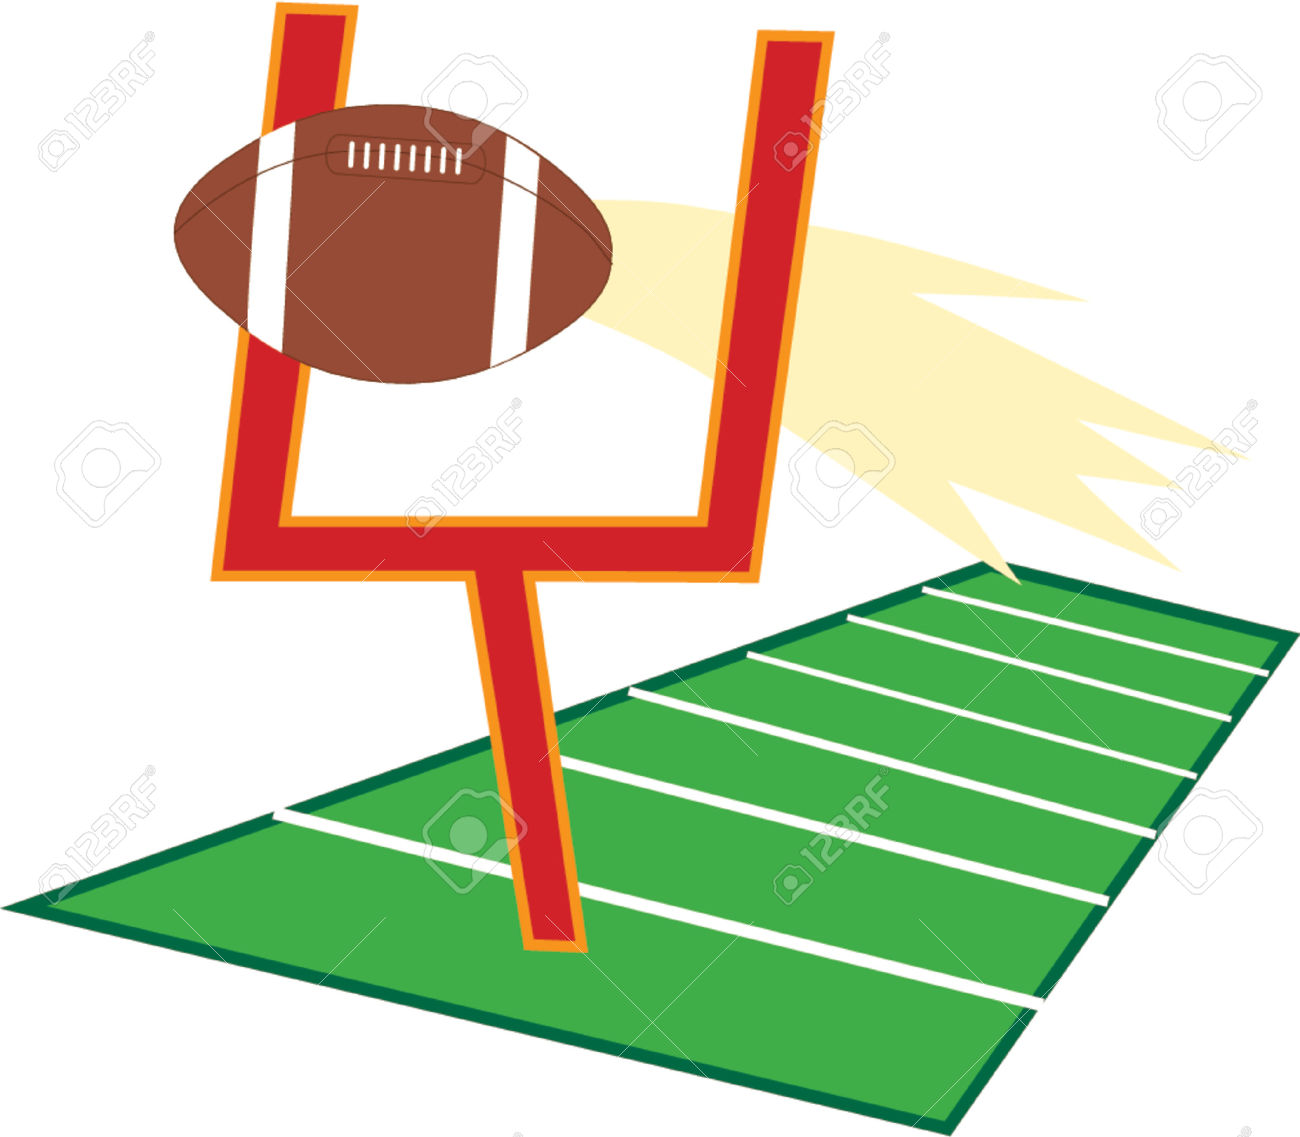 Goal post clipart - Clipground